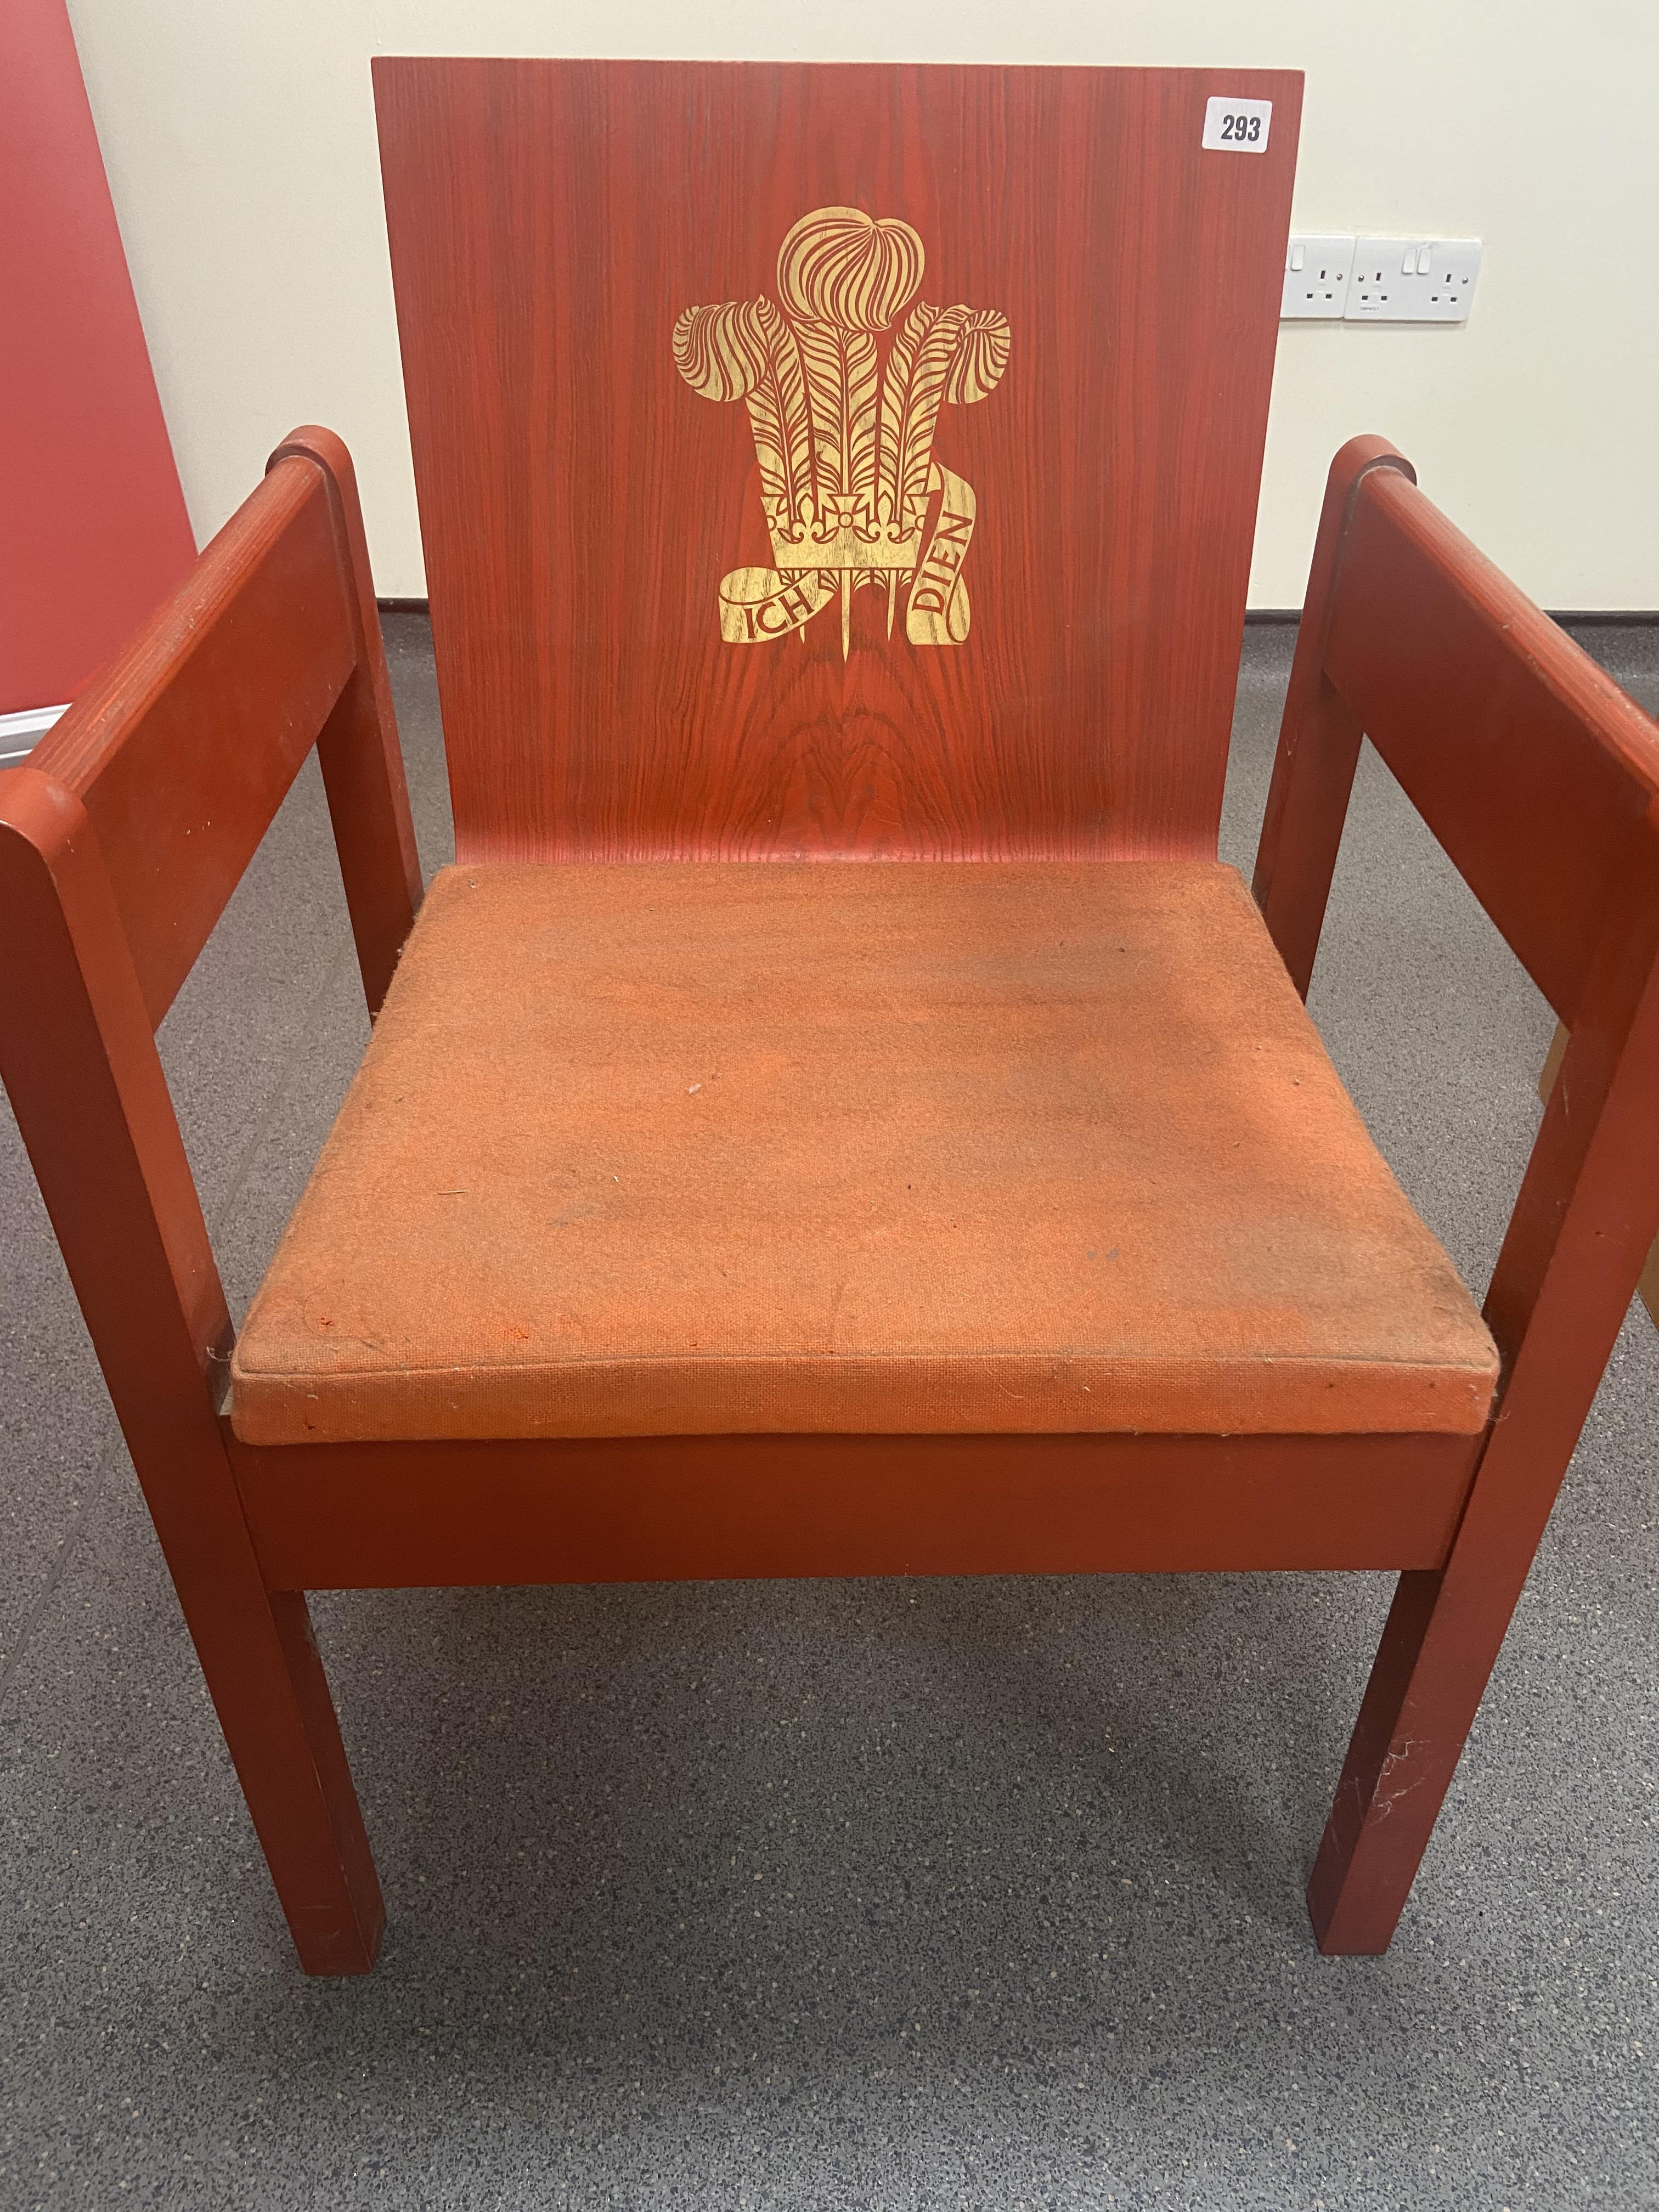 PRINCE OF WALES INVESTITURE CHAIR - Image 2 of 2